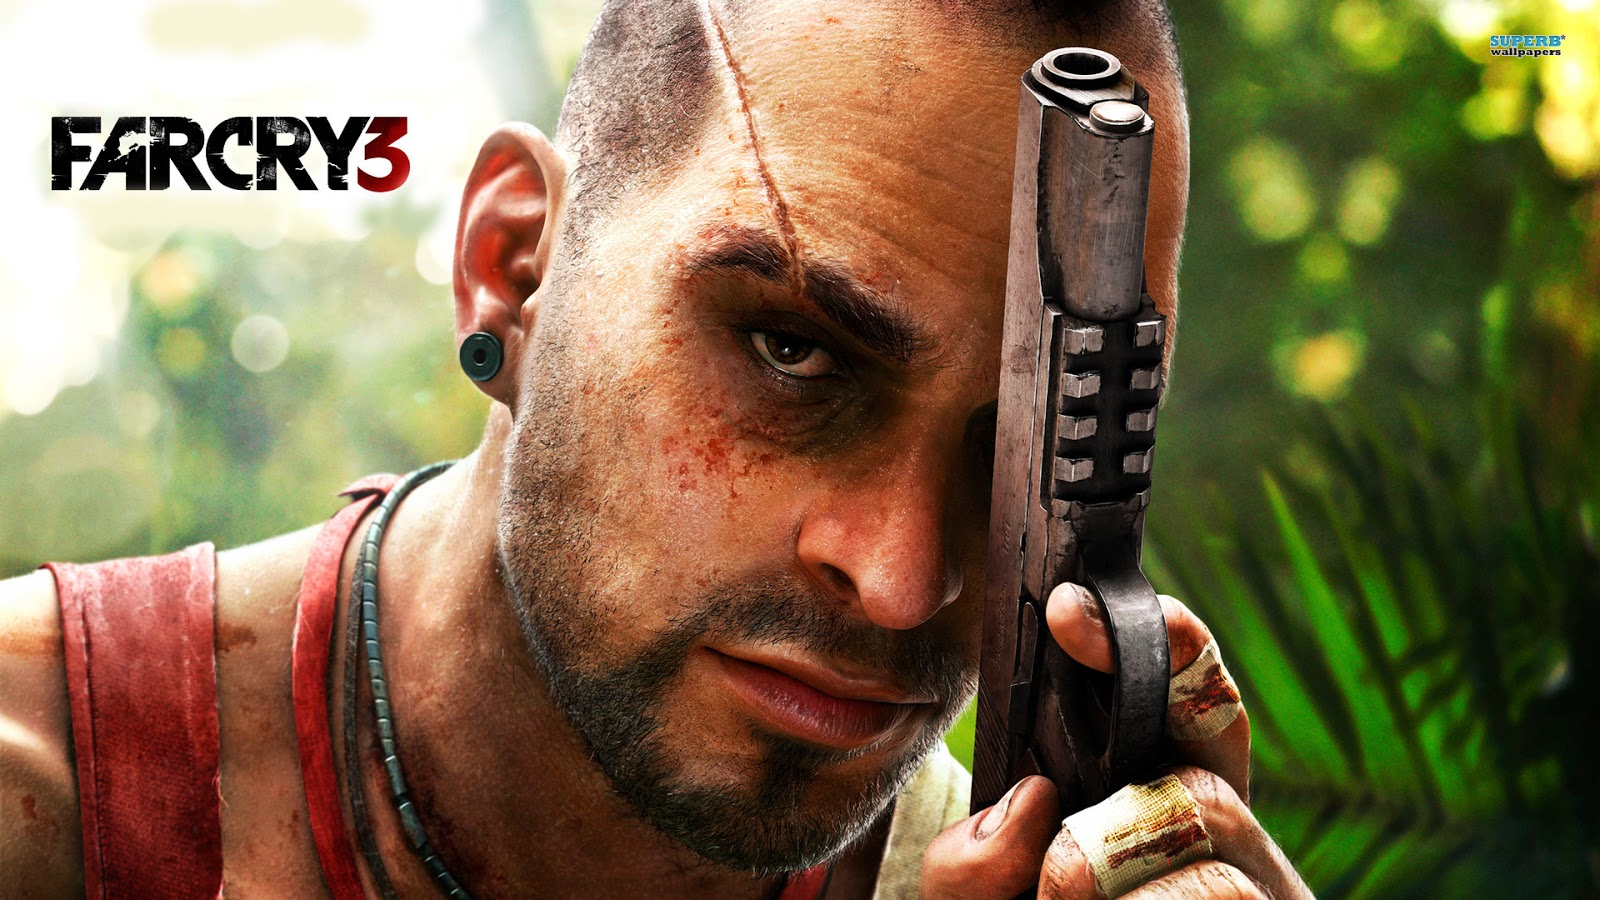 vaas far cry 3 - photo #2